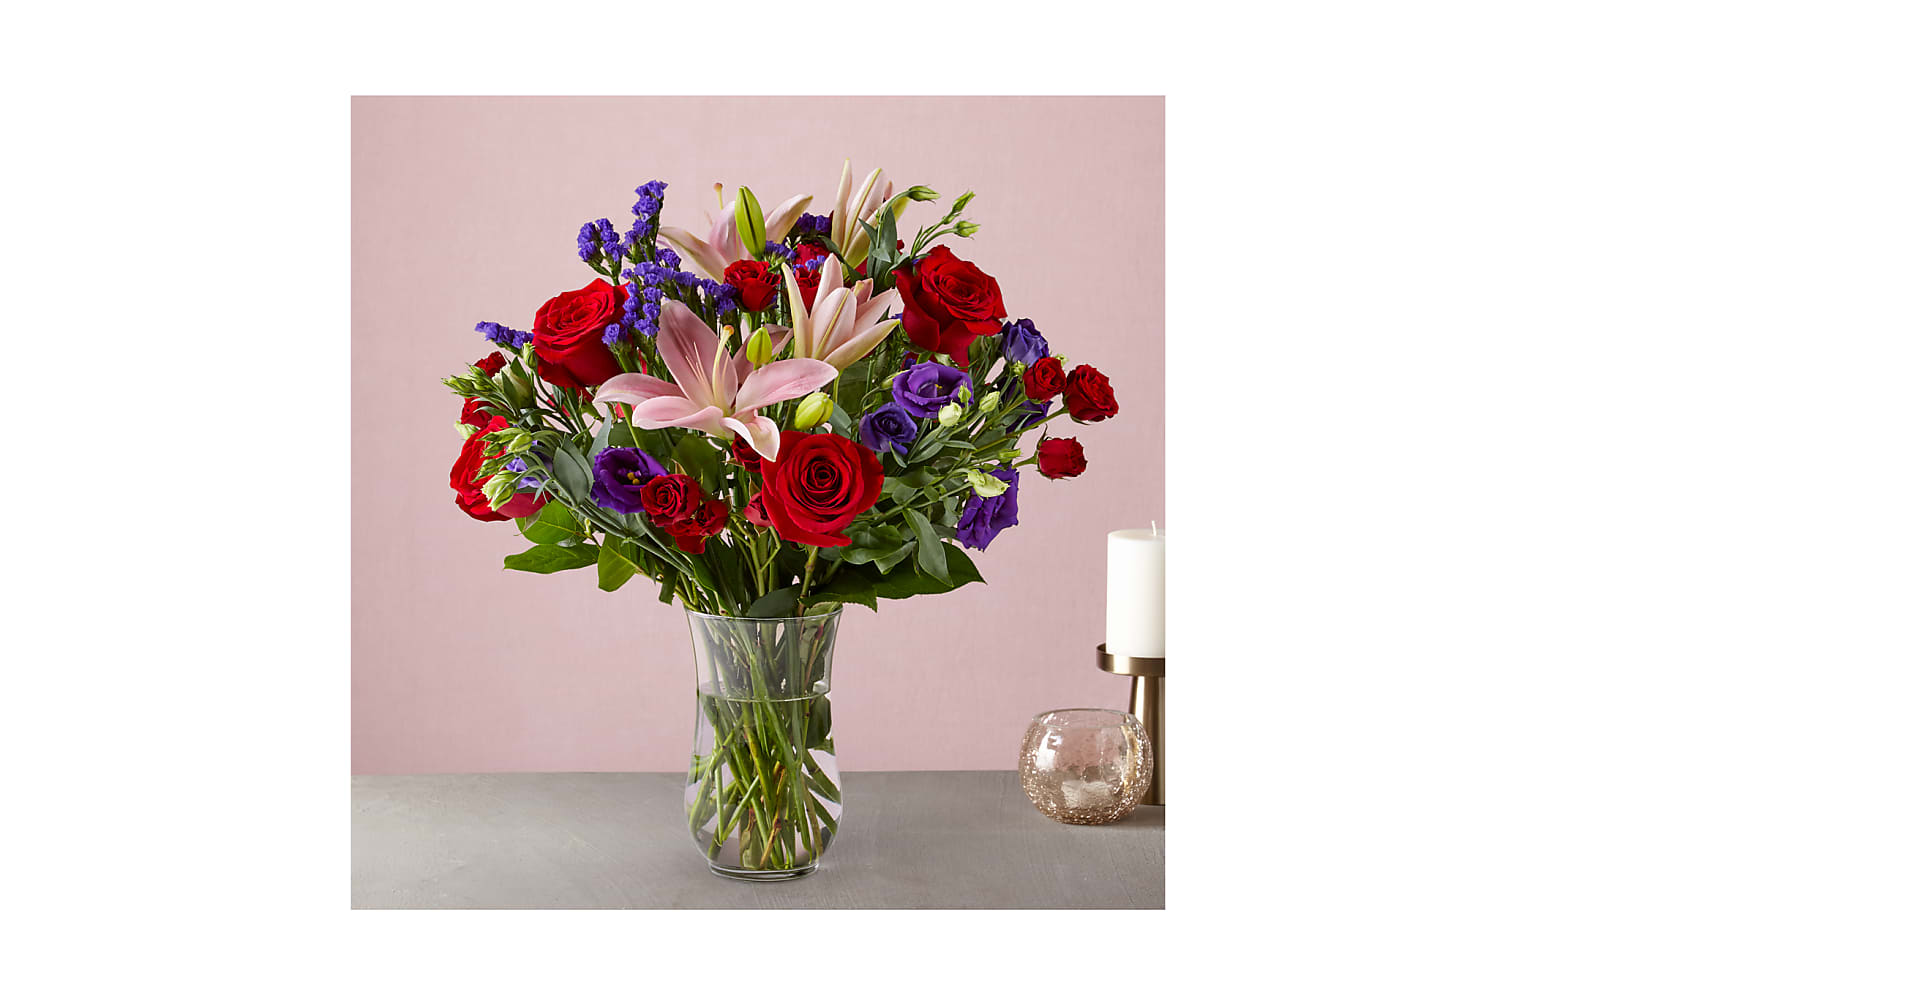 STYLECASTER | Flower delivery services